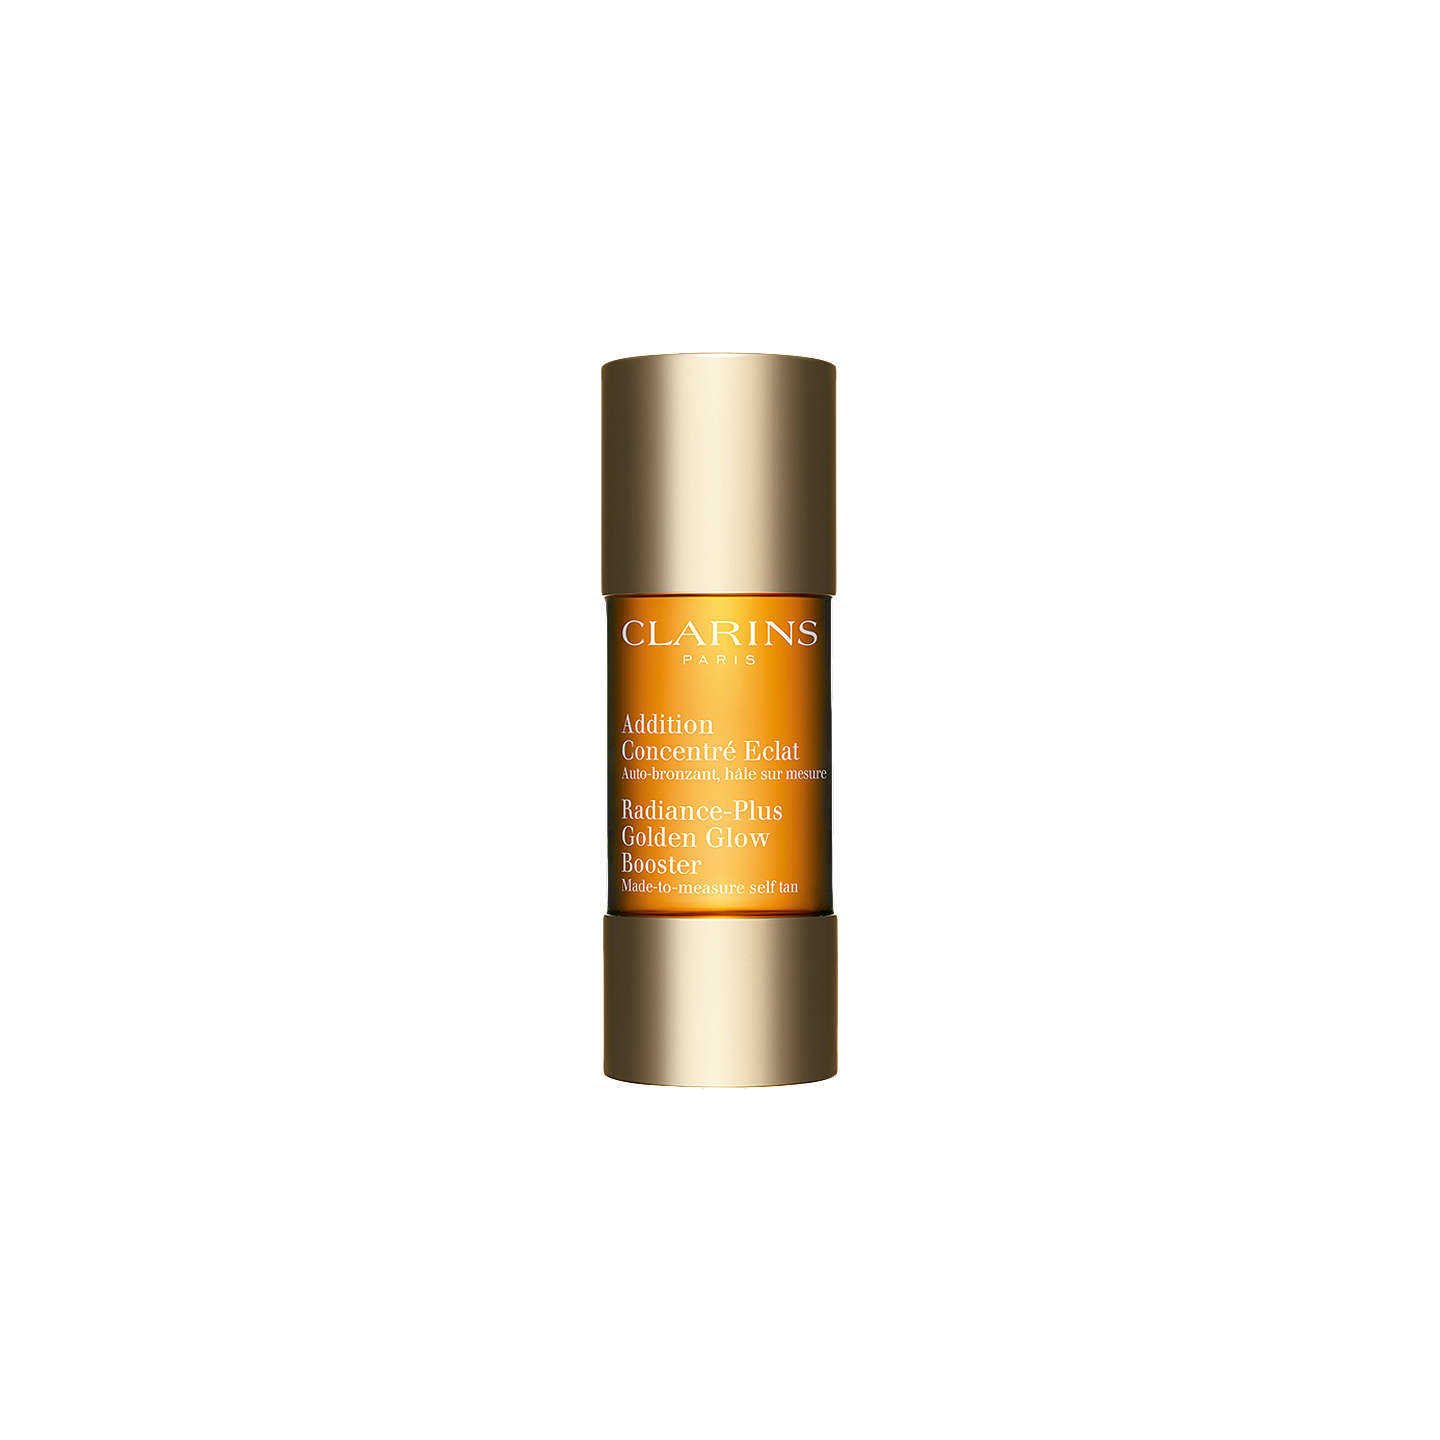 BuyClarins Radiance-Plus Golden Glow Booster, 15ml Online at johnlewis.com